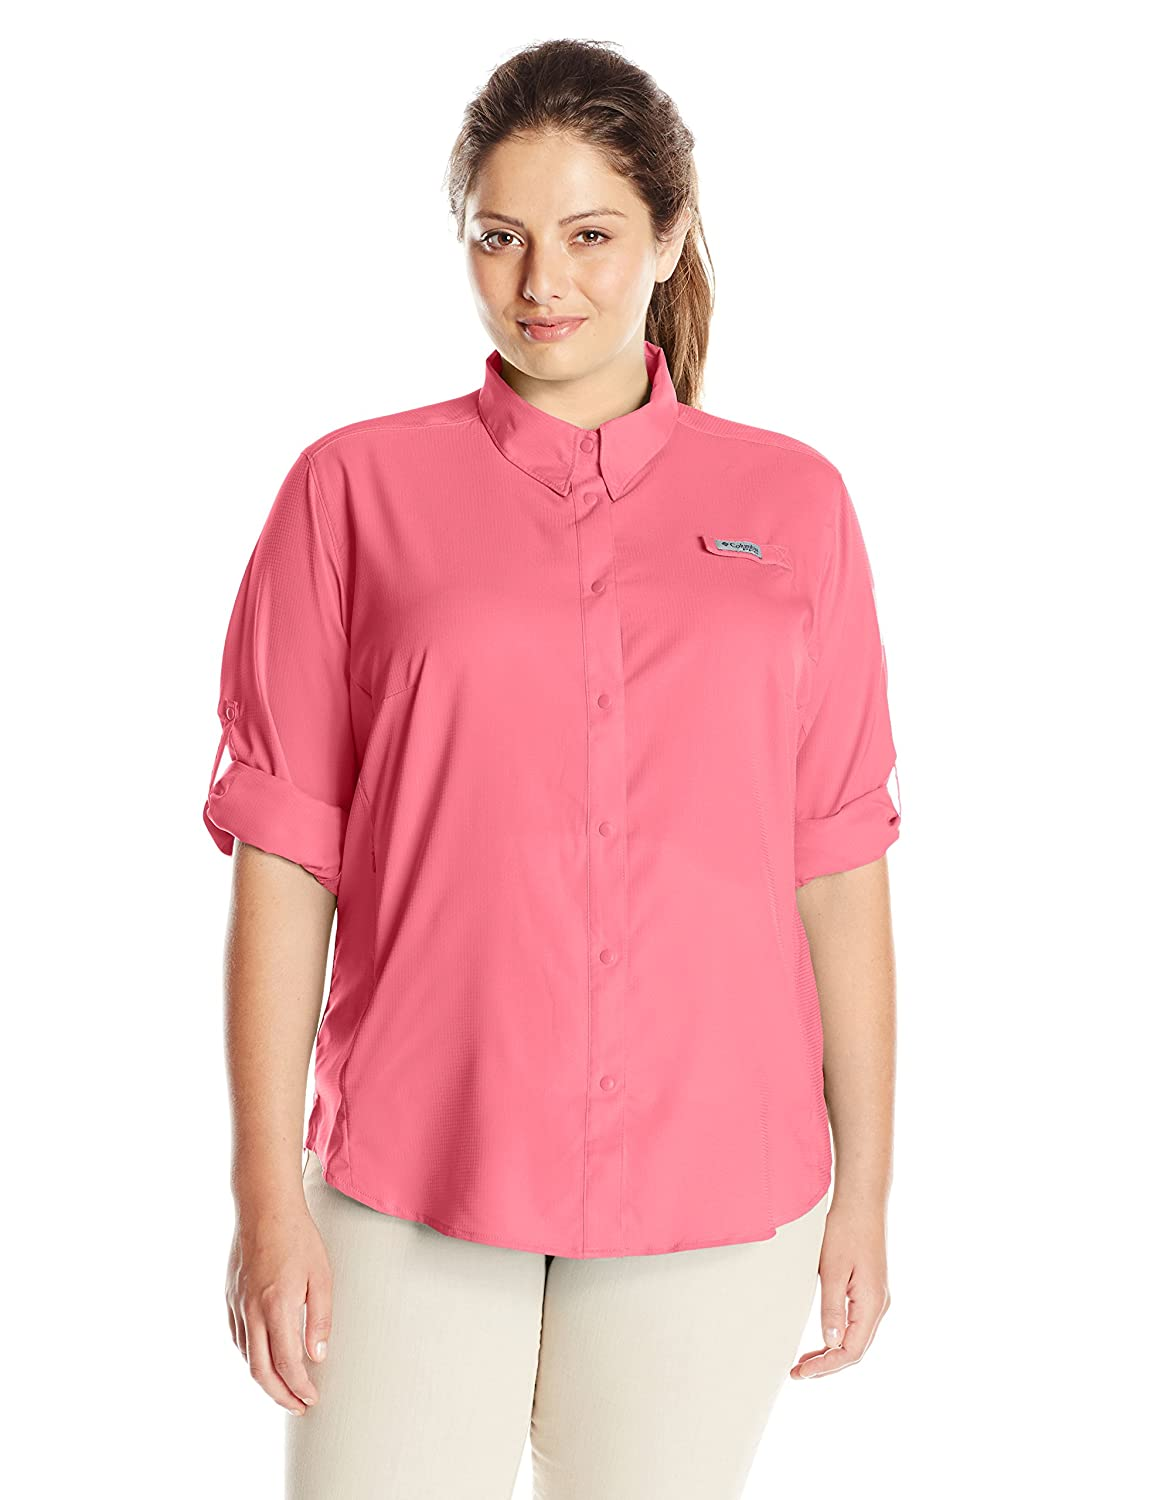 Columbia Sportswear Women's Tamiami II Long-Sleeve Shirt (Plus-Size) Columbia (Sporting Goods) 1275702-614